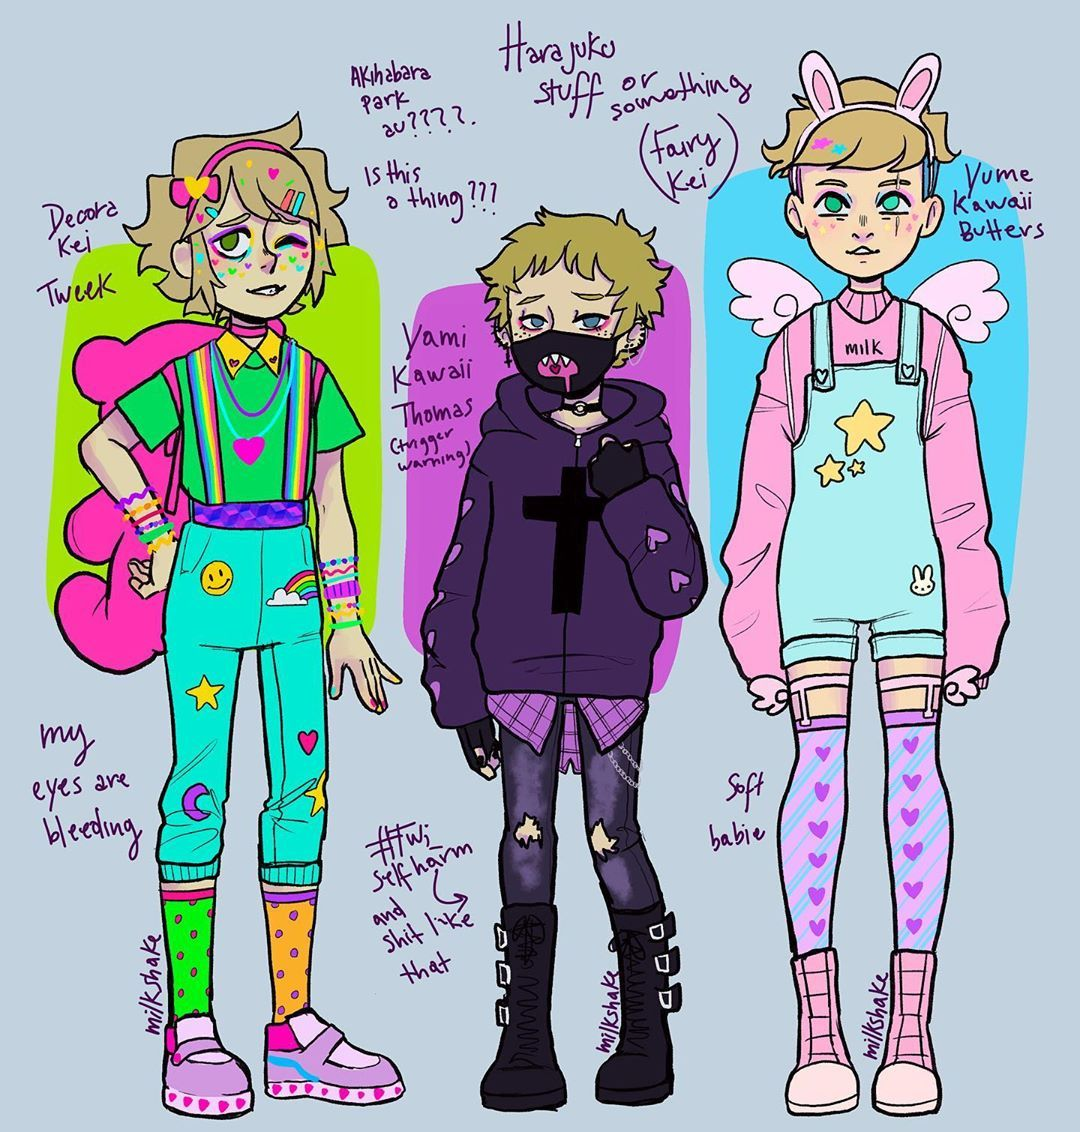 Milkshake On Instagram Dont Pay Attention To This Also Be Careful If You Google Yami Kawaii Eeeee I Just Wanted To Draw Some In 2020 Kawaii Drawings Kawaii Clothes